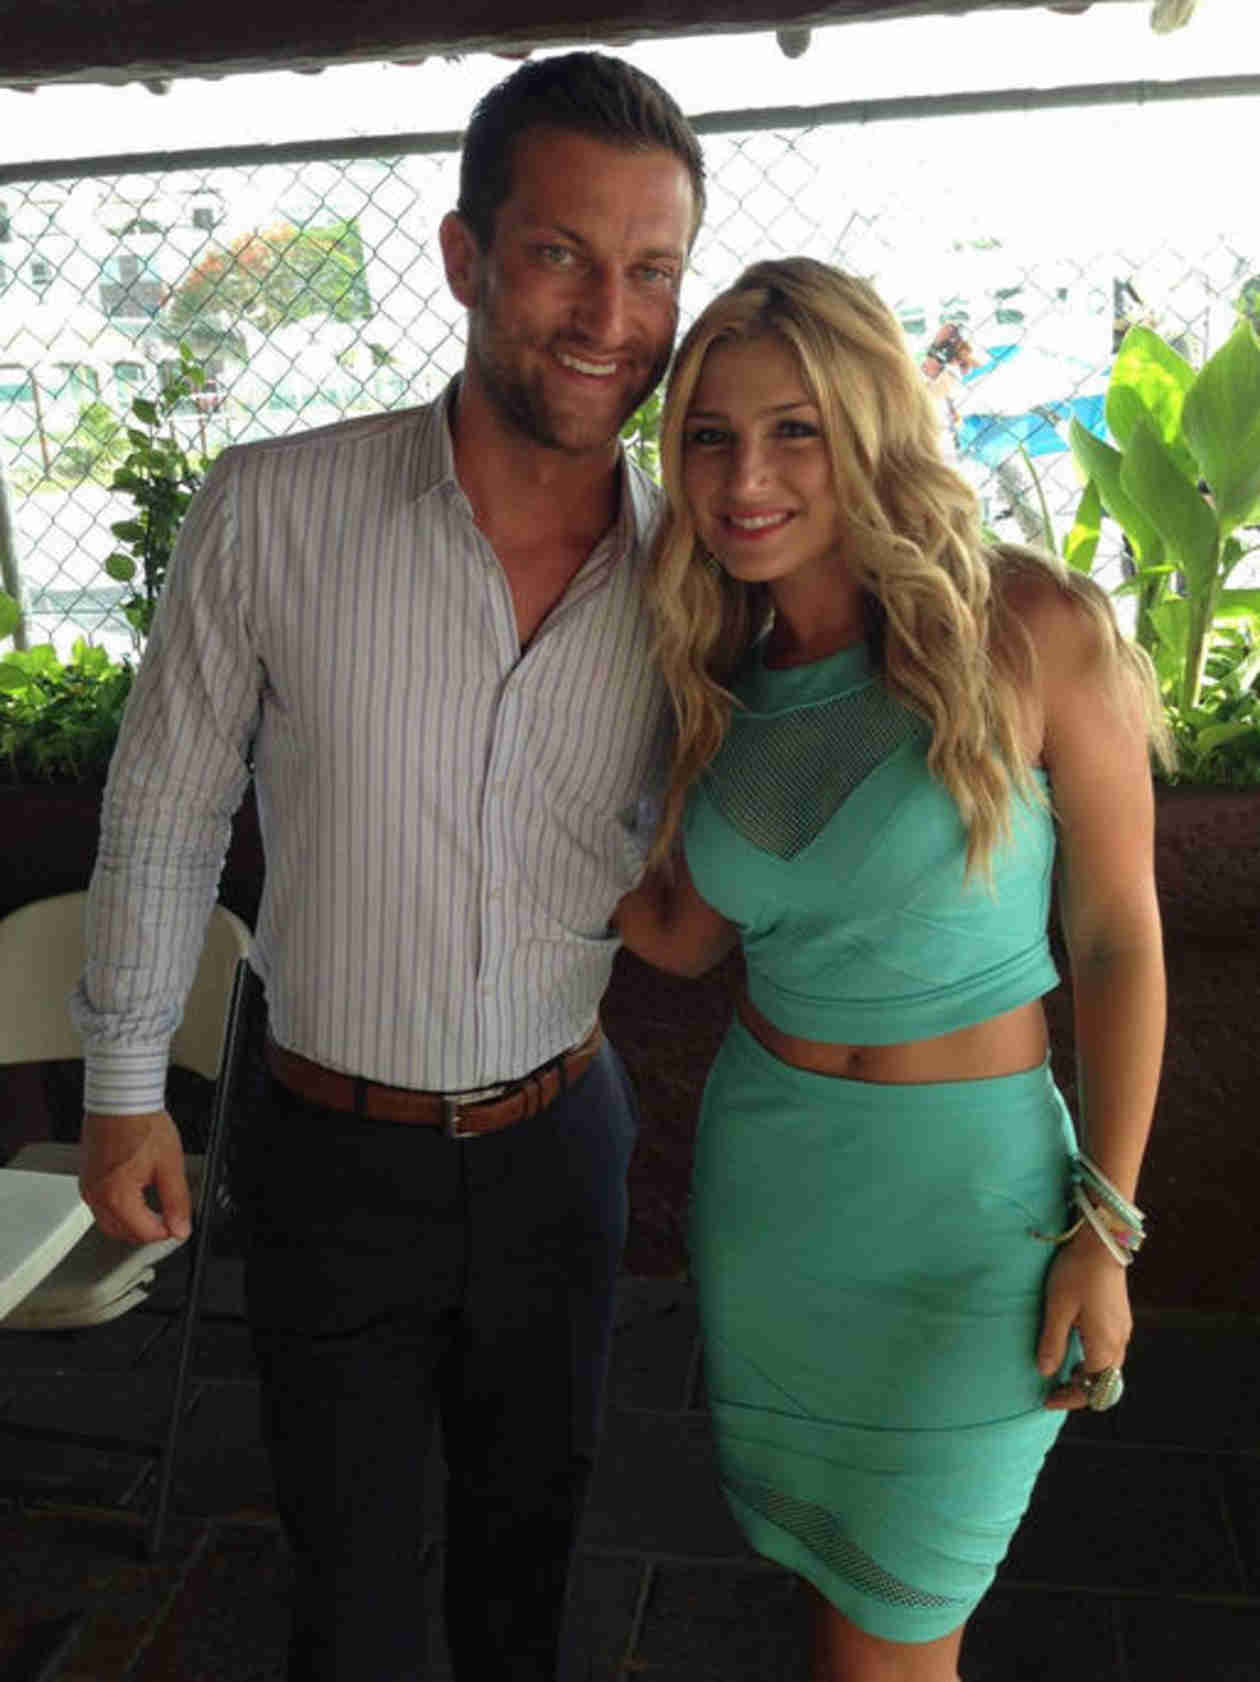 Chris Bukowski Shares Real Reason He and Elise Mosca Broke Up!